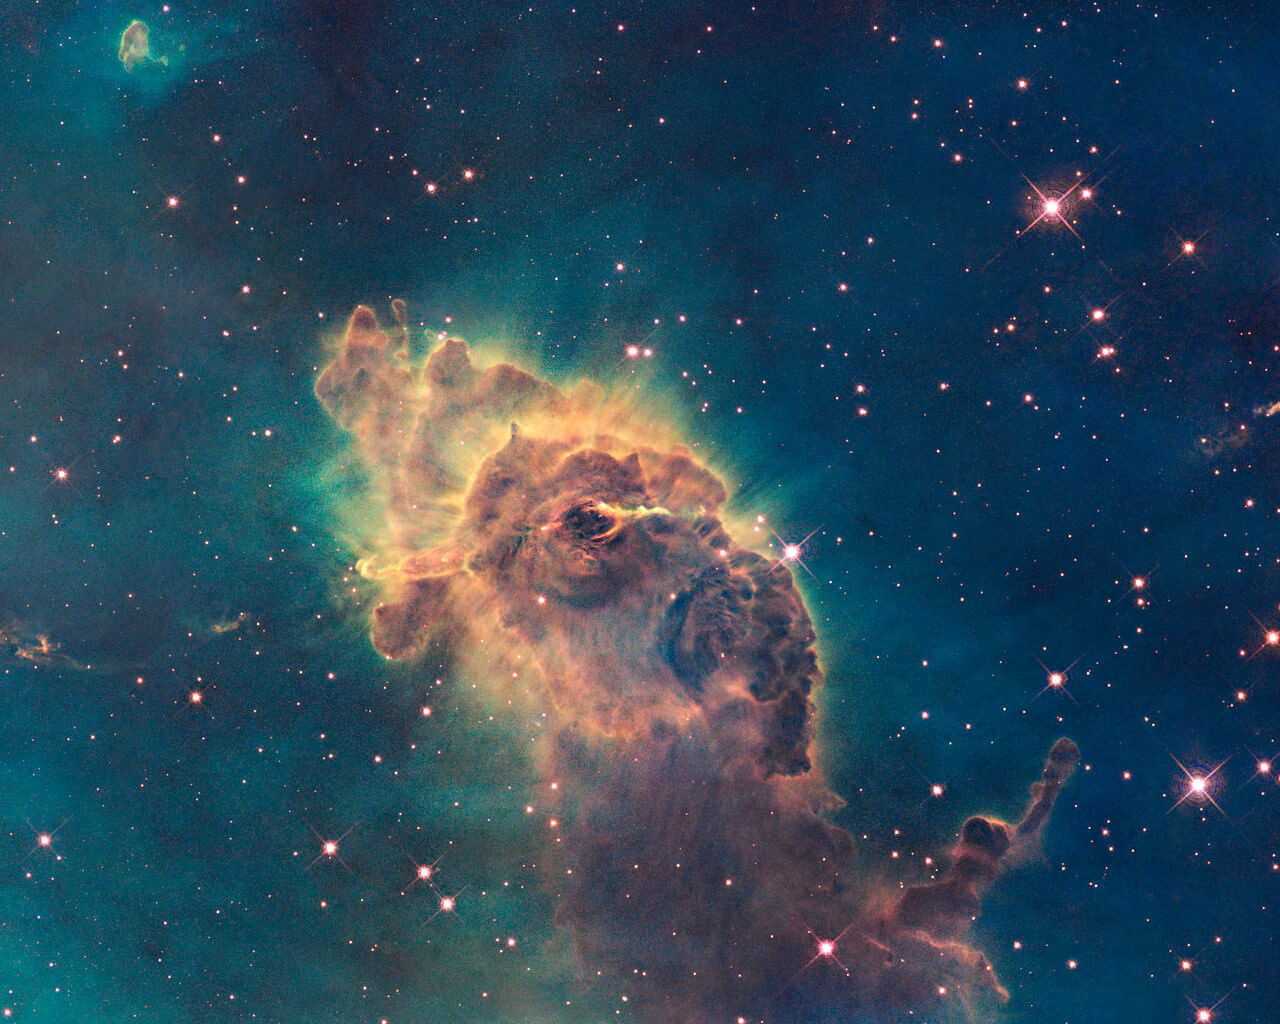 space is so cool - hubble pictures 4 (1)